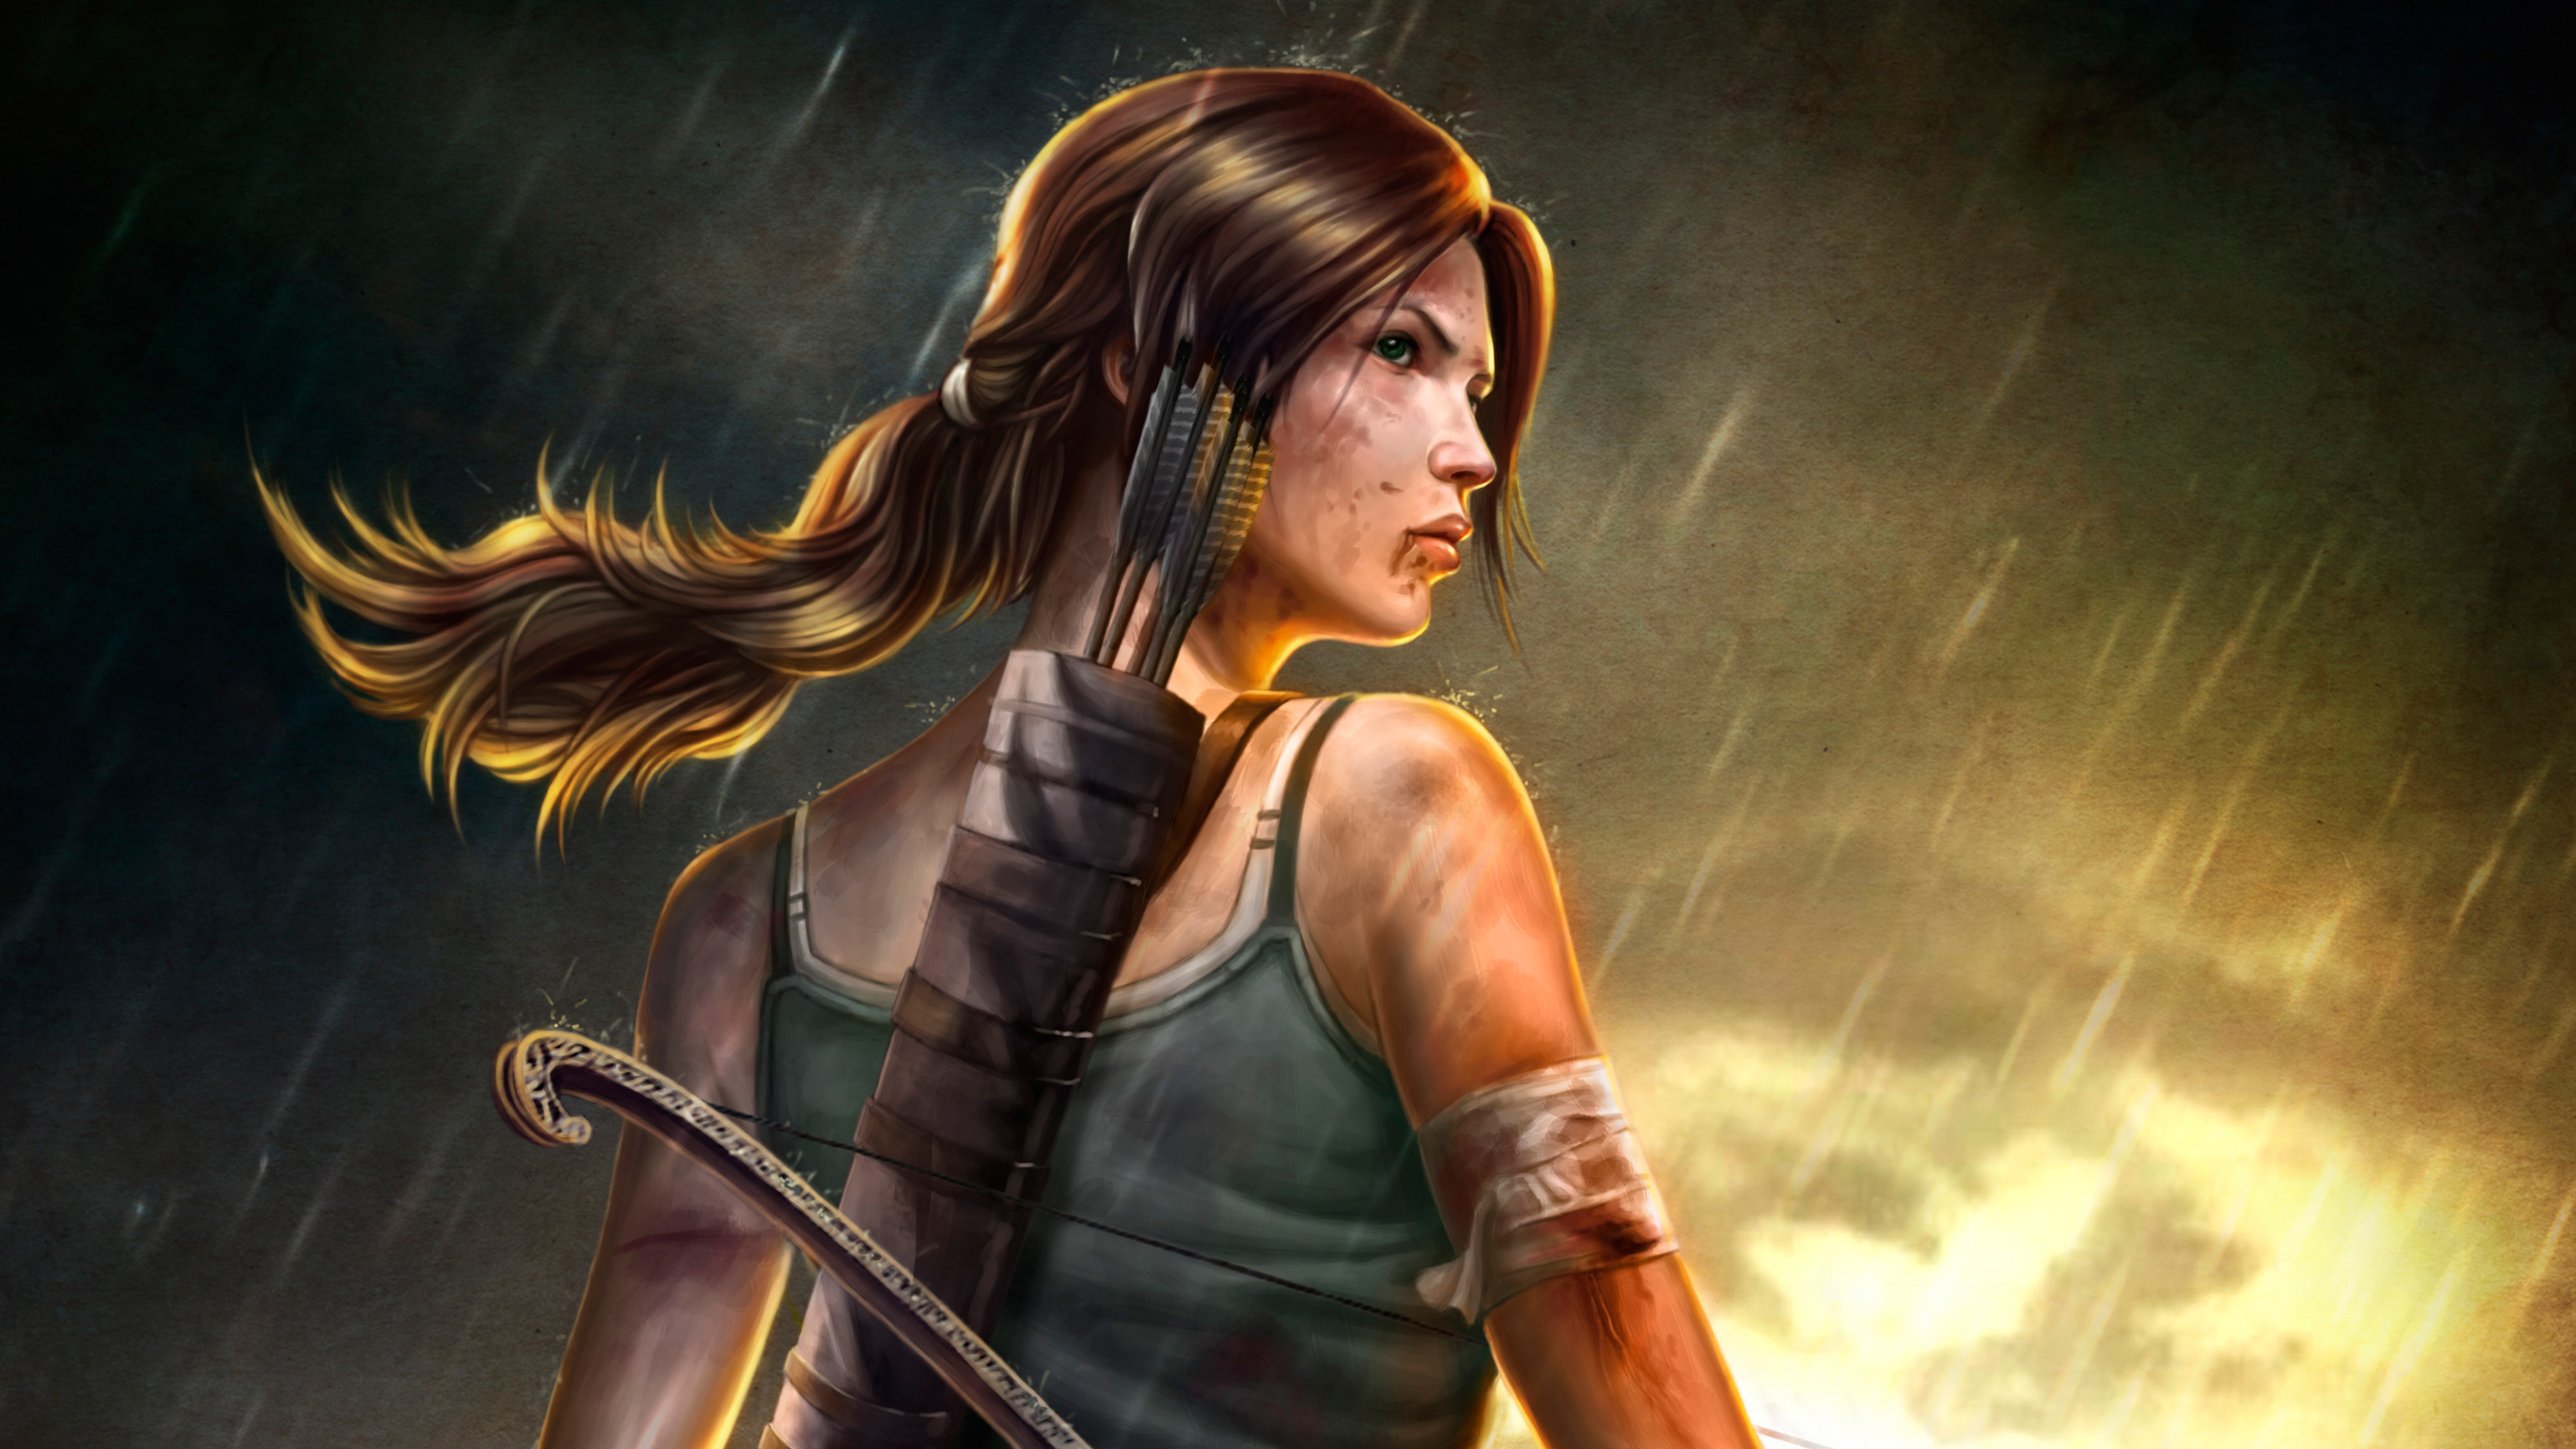 2932x2932 Pubg Android Game 4k Ipad Pro Retina Display Hd: Lara Croft Tomb Raider 4k Artwork, HD Games, 4k Wallpapers